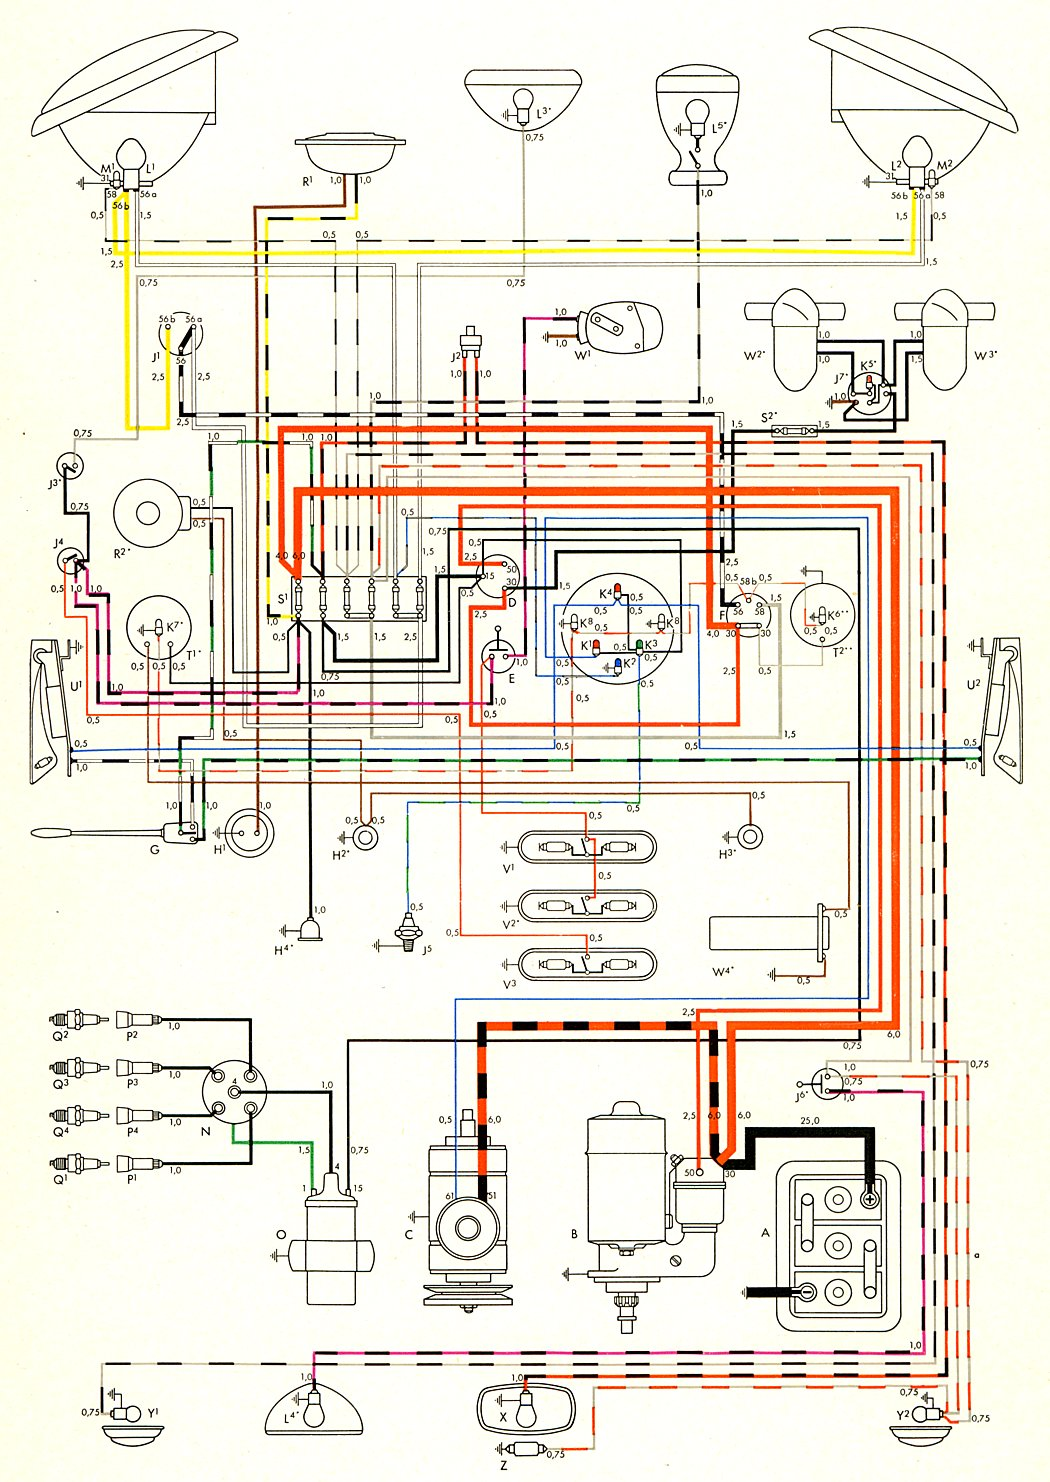 hight resolution of 58 vw alternator wiring data wiring diagram schema rh 50 diehoehle derloewen de vw generator to alternator conversion vw generator to alternator conversion